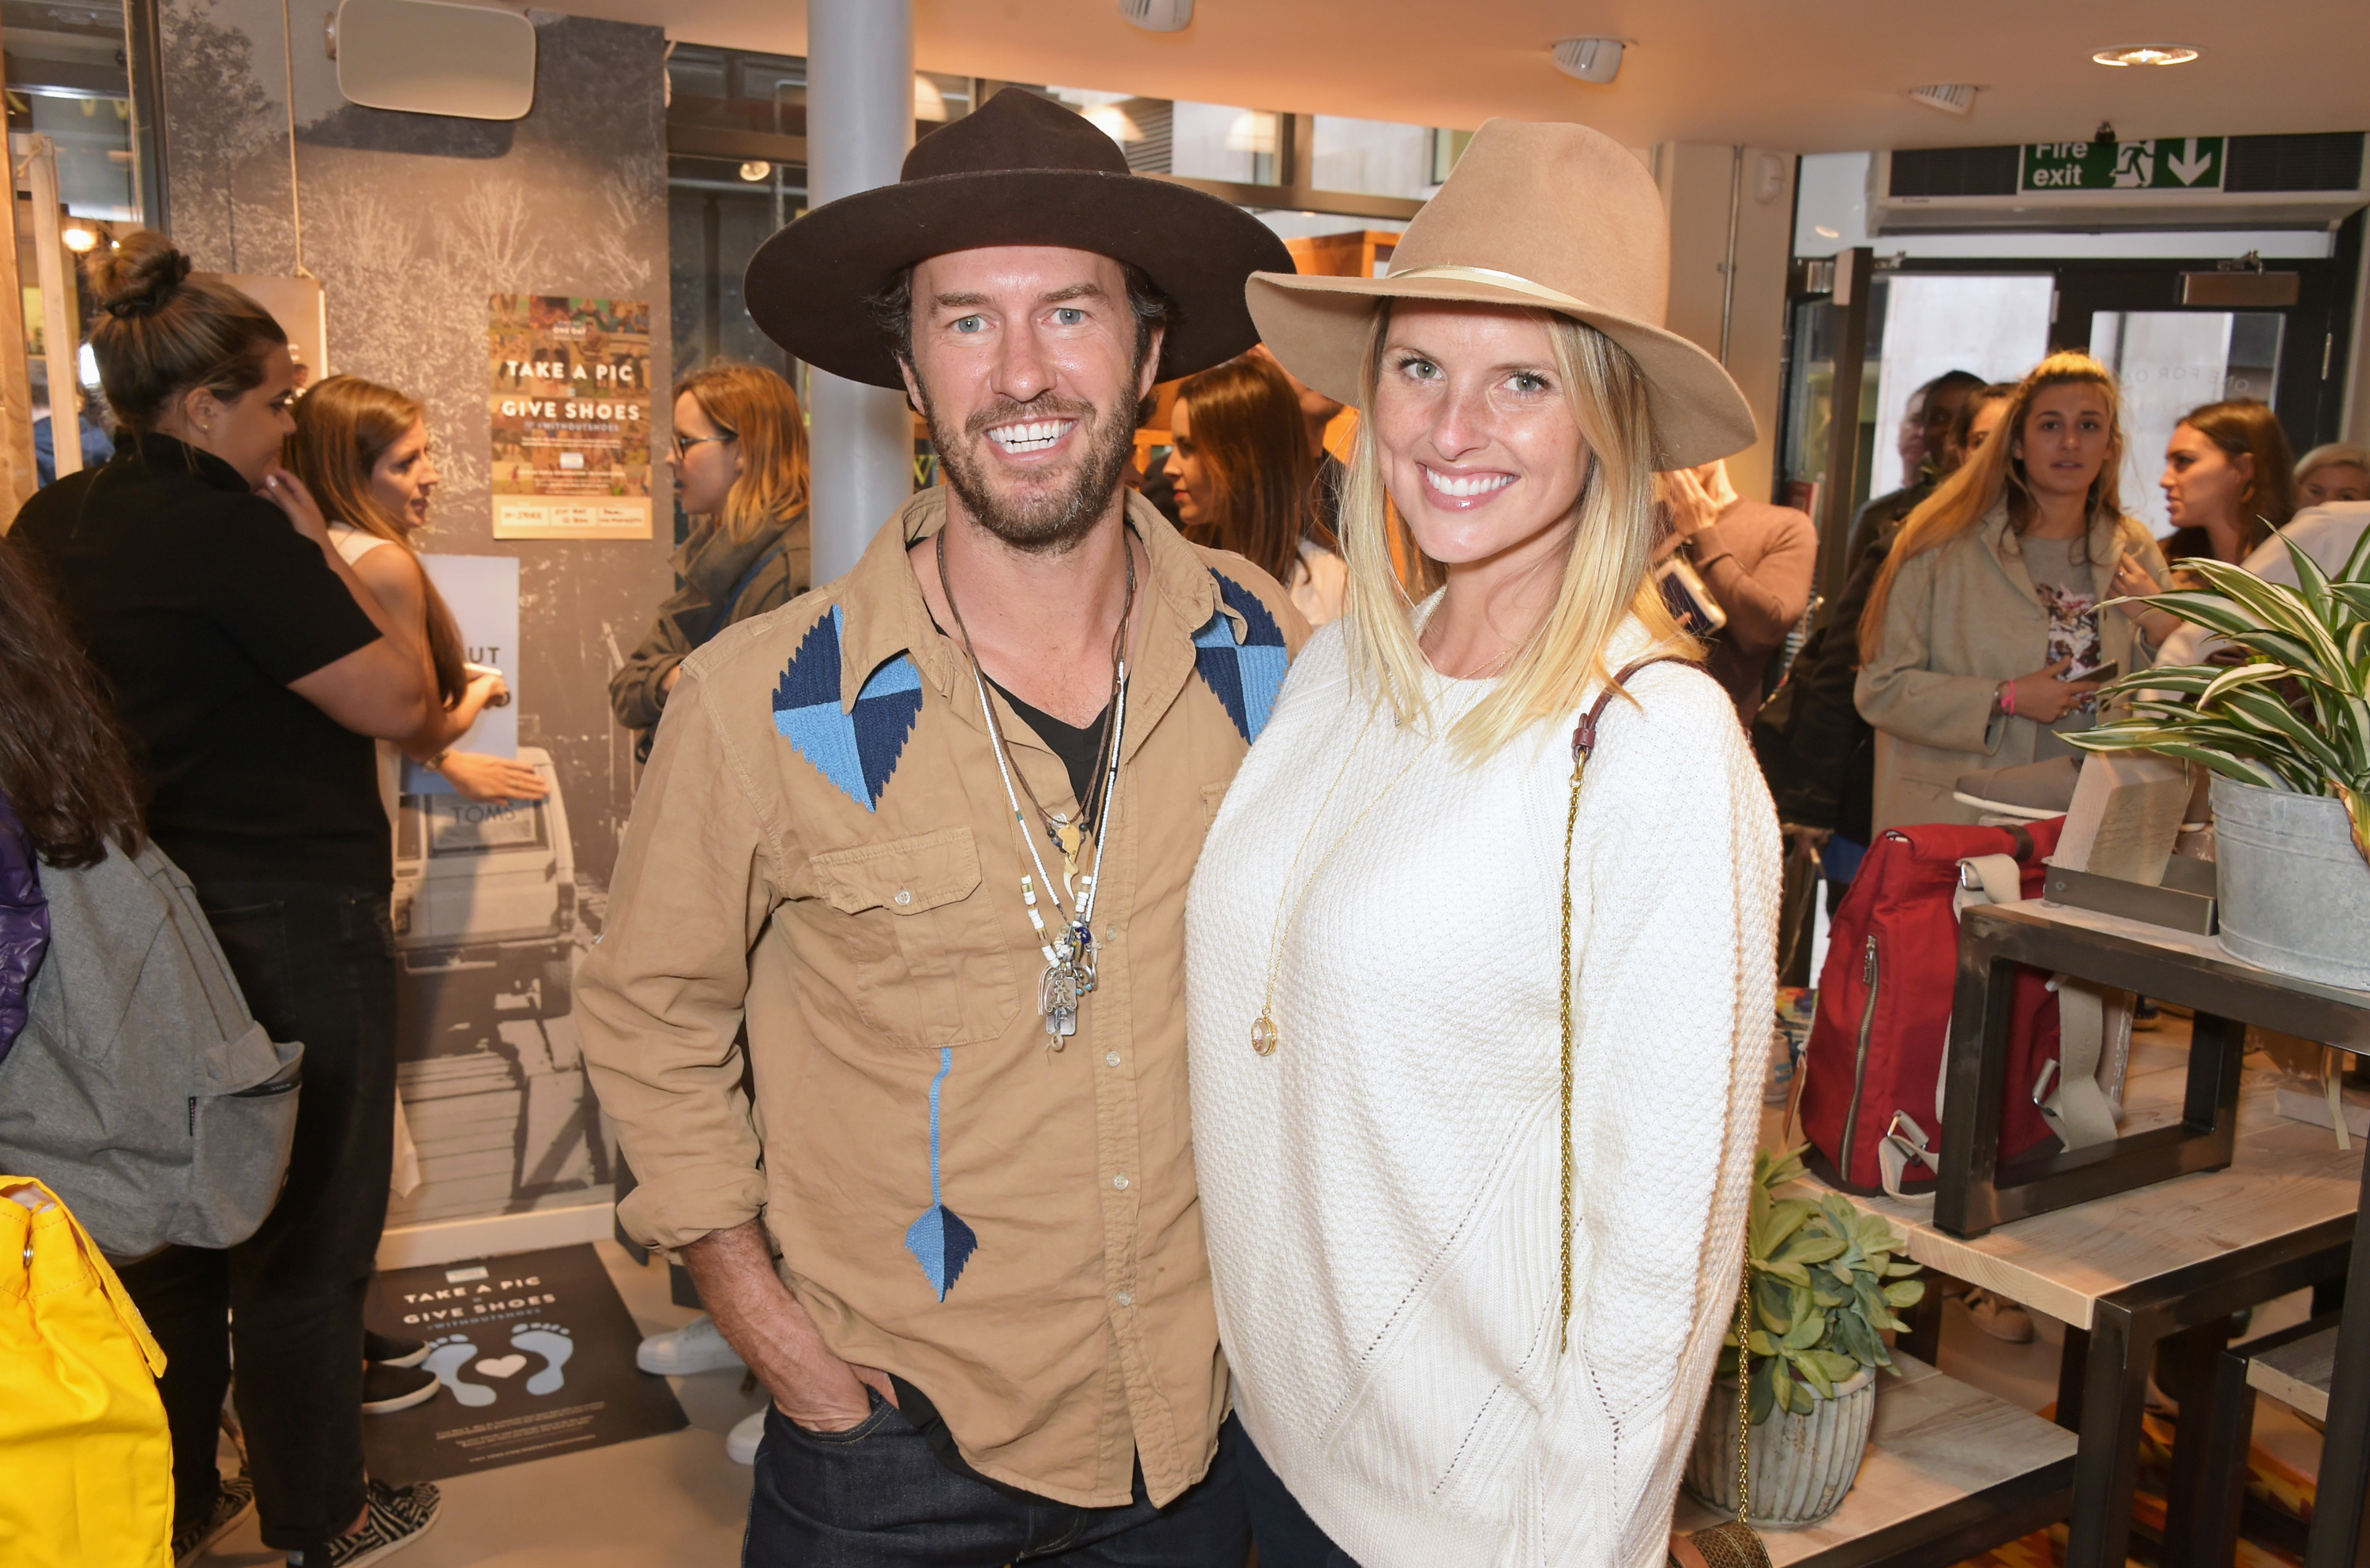 LONDON, ENGLAND - MAY 05: TOMS founder Blake Mycoskie (L) and wife Heather Mycoskie attend the launch of TOMS London Community Outpost, their first UK Flagship store off Carnaby Street on May 5, 2015 in London, England. Pic Credit: Dave Benett